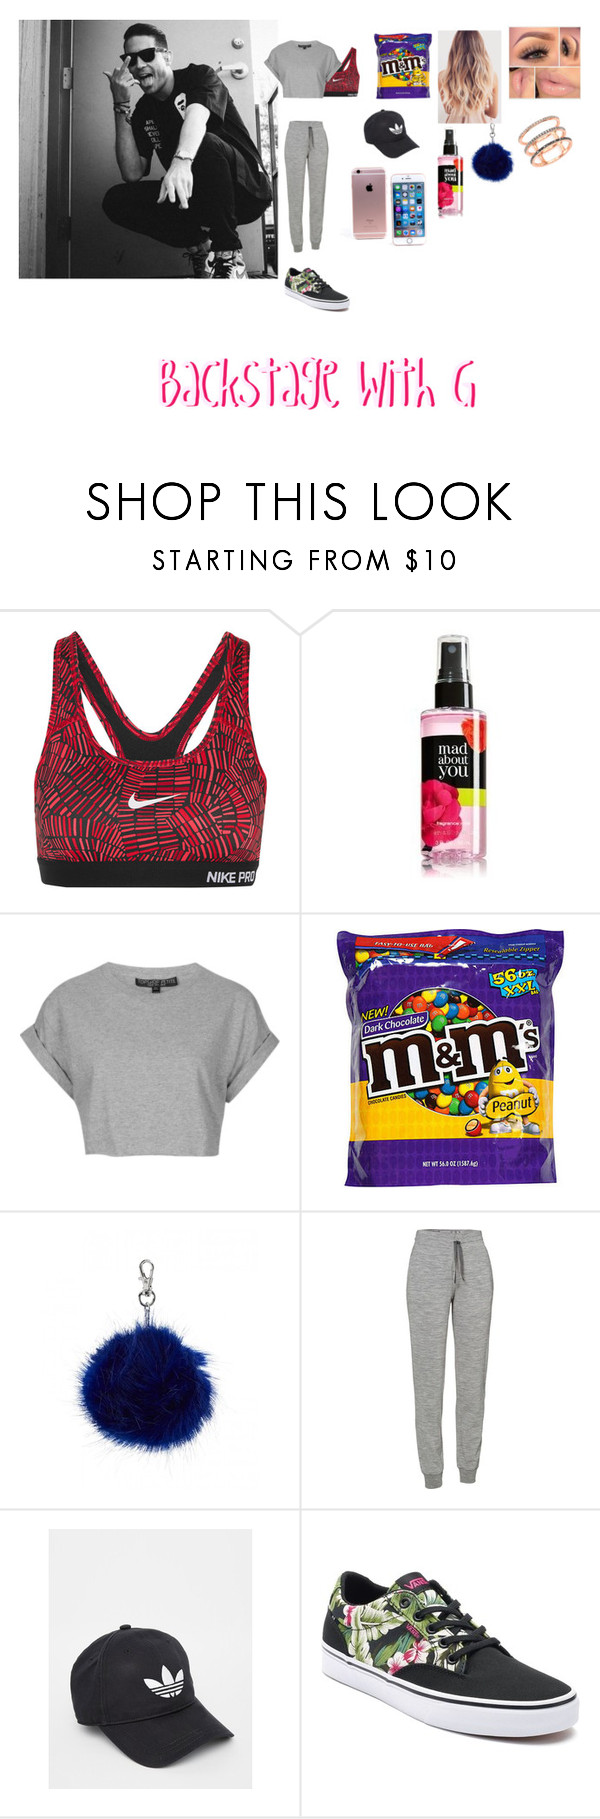 """""""Backstage with G."""" by lanagillum on Polyvore featuring beauty, Sephora Collection, NIKE, Topshop, Icebreaker, adidas, Vans and EF Collection"""